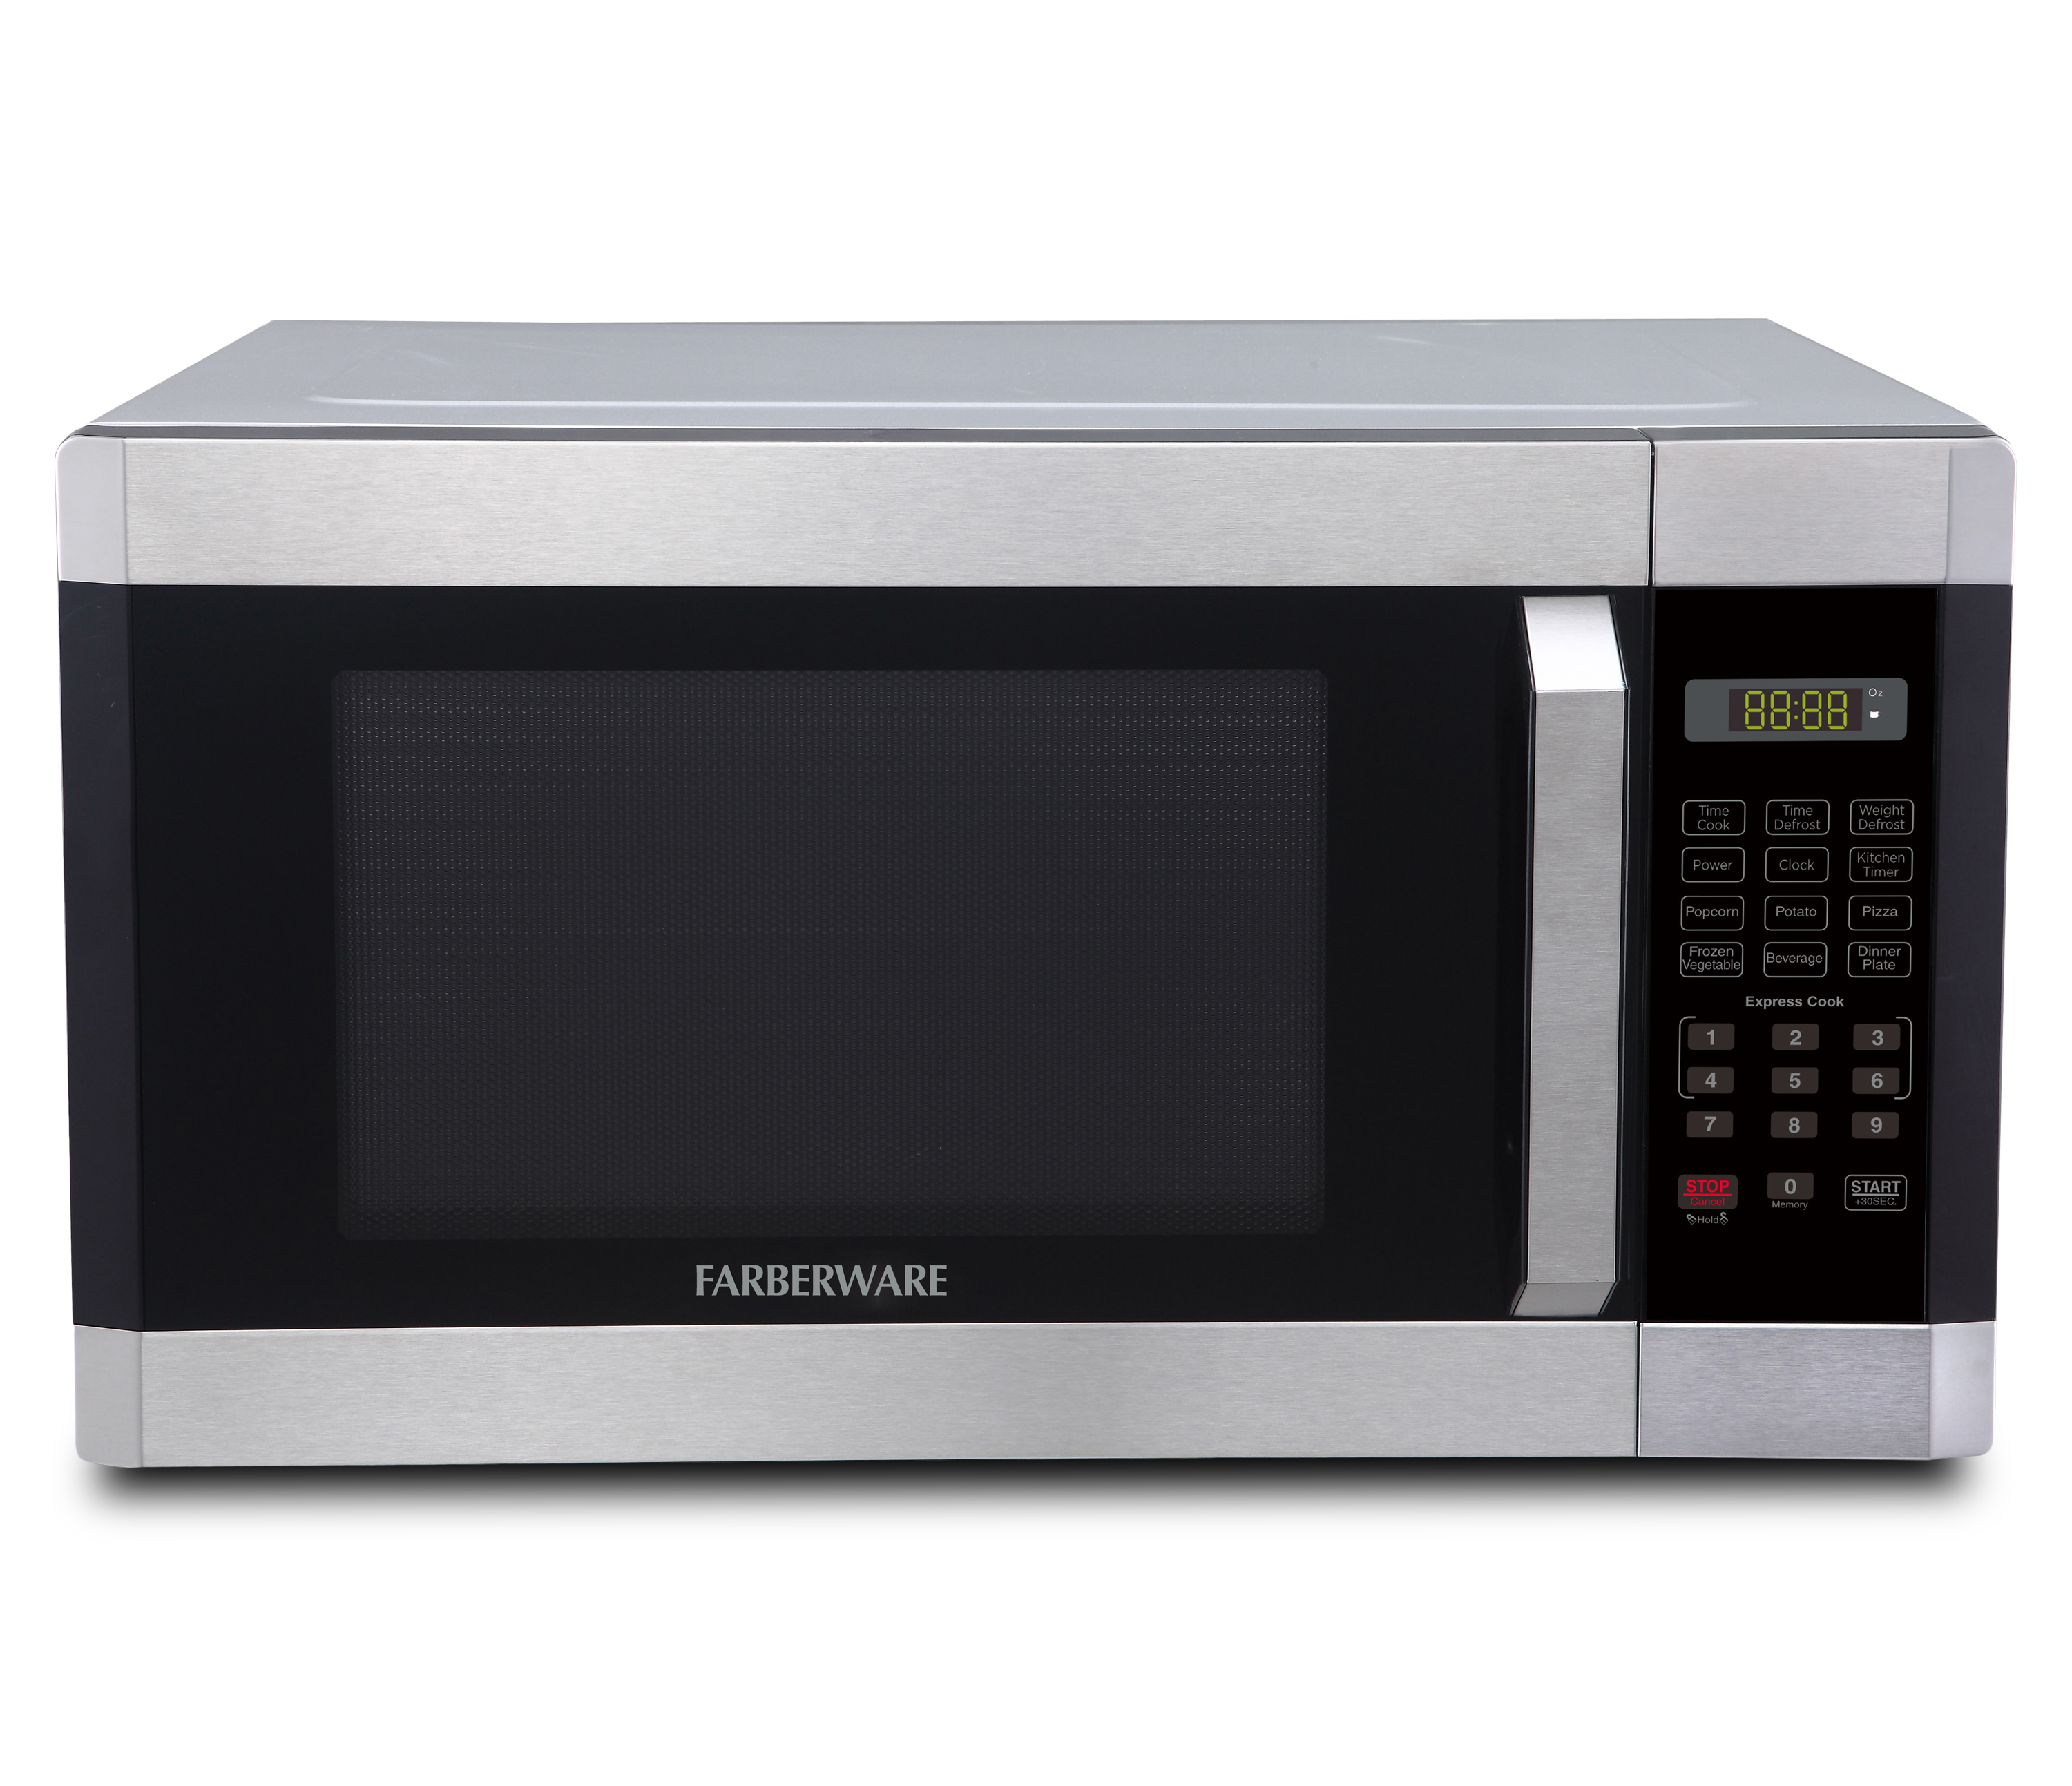 farberware 1 6 cu ft microwave oven brushed stainless steel fmo16ahtbkc